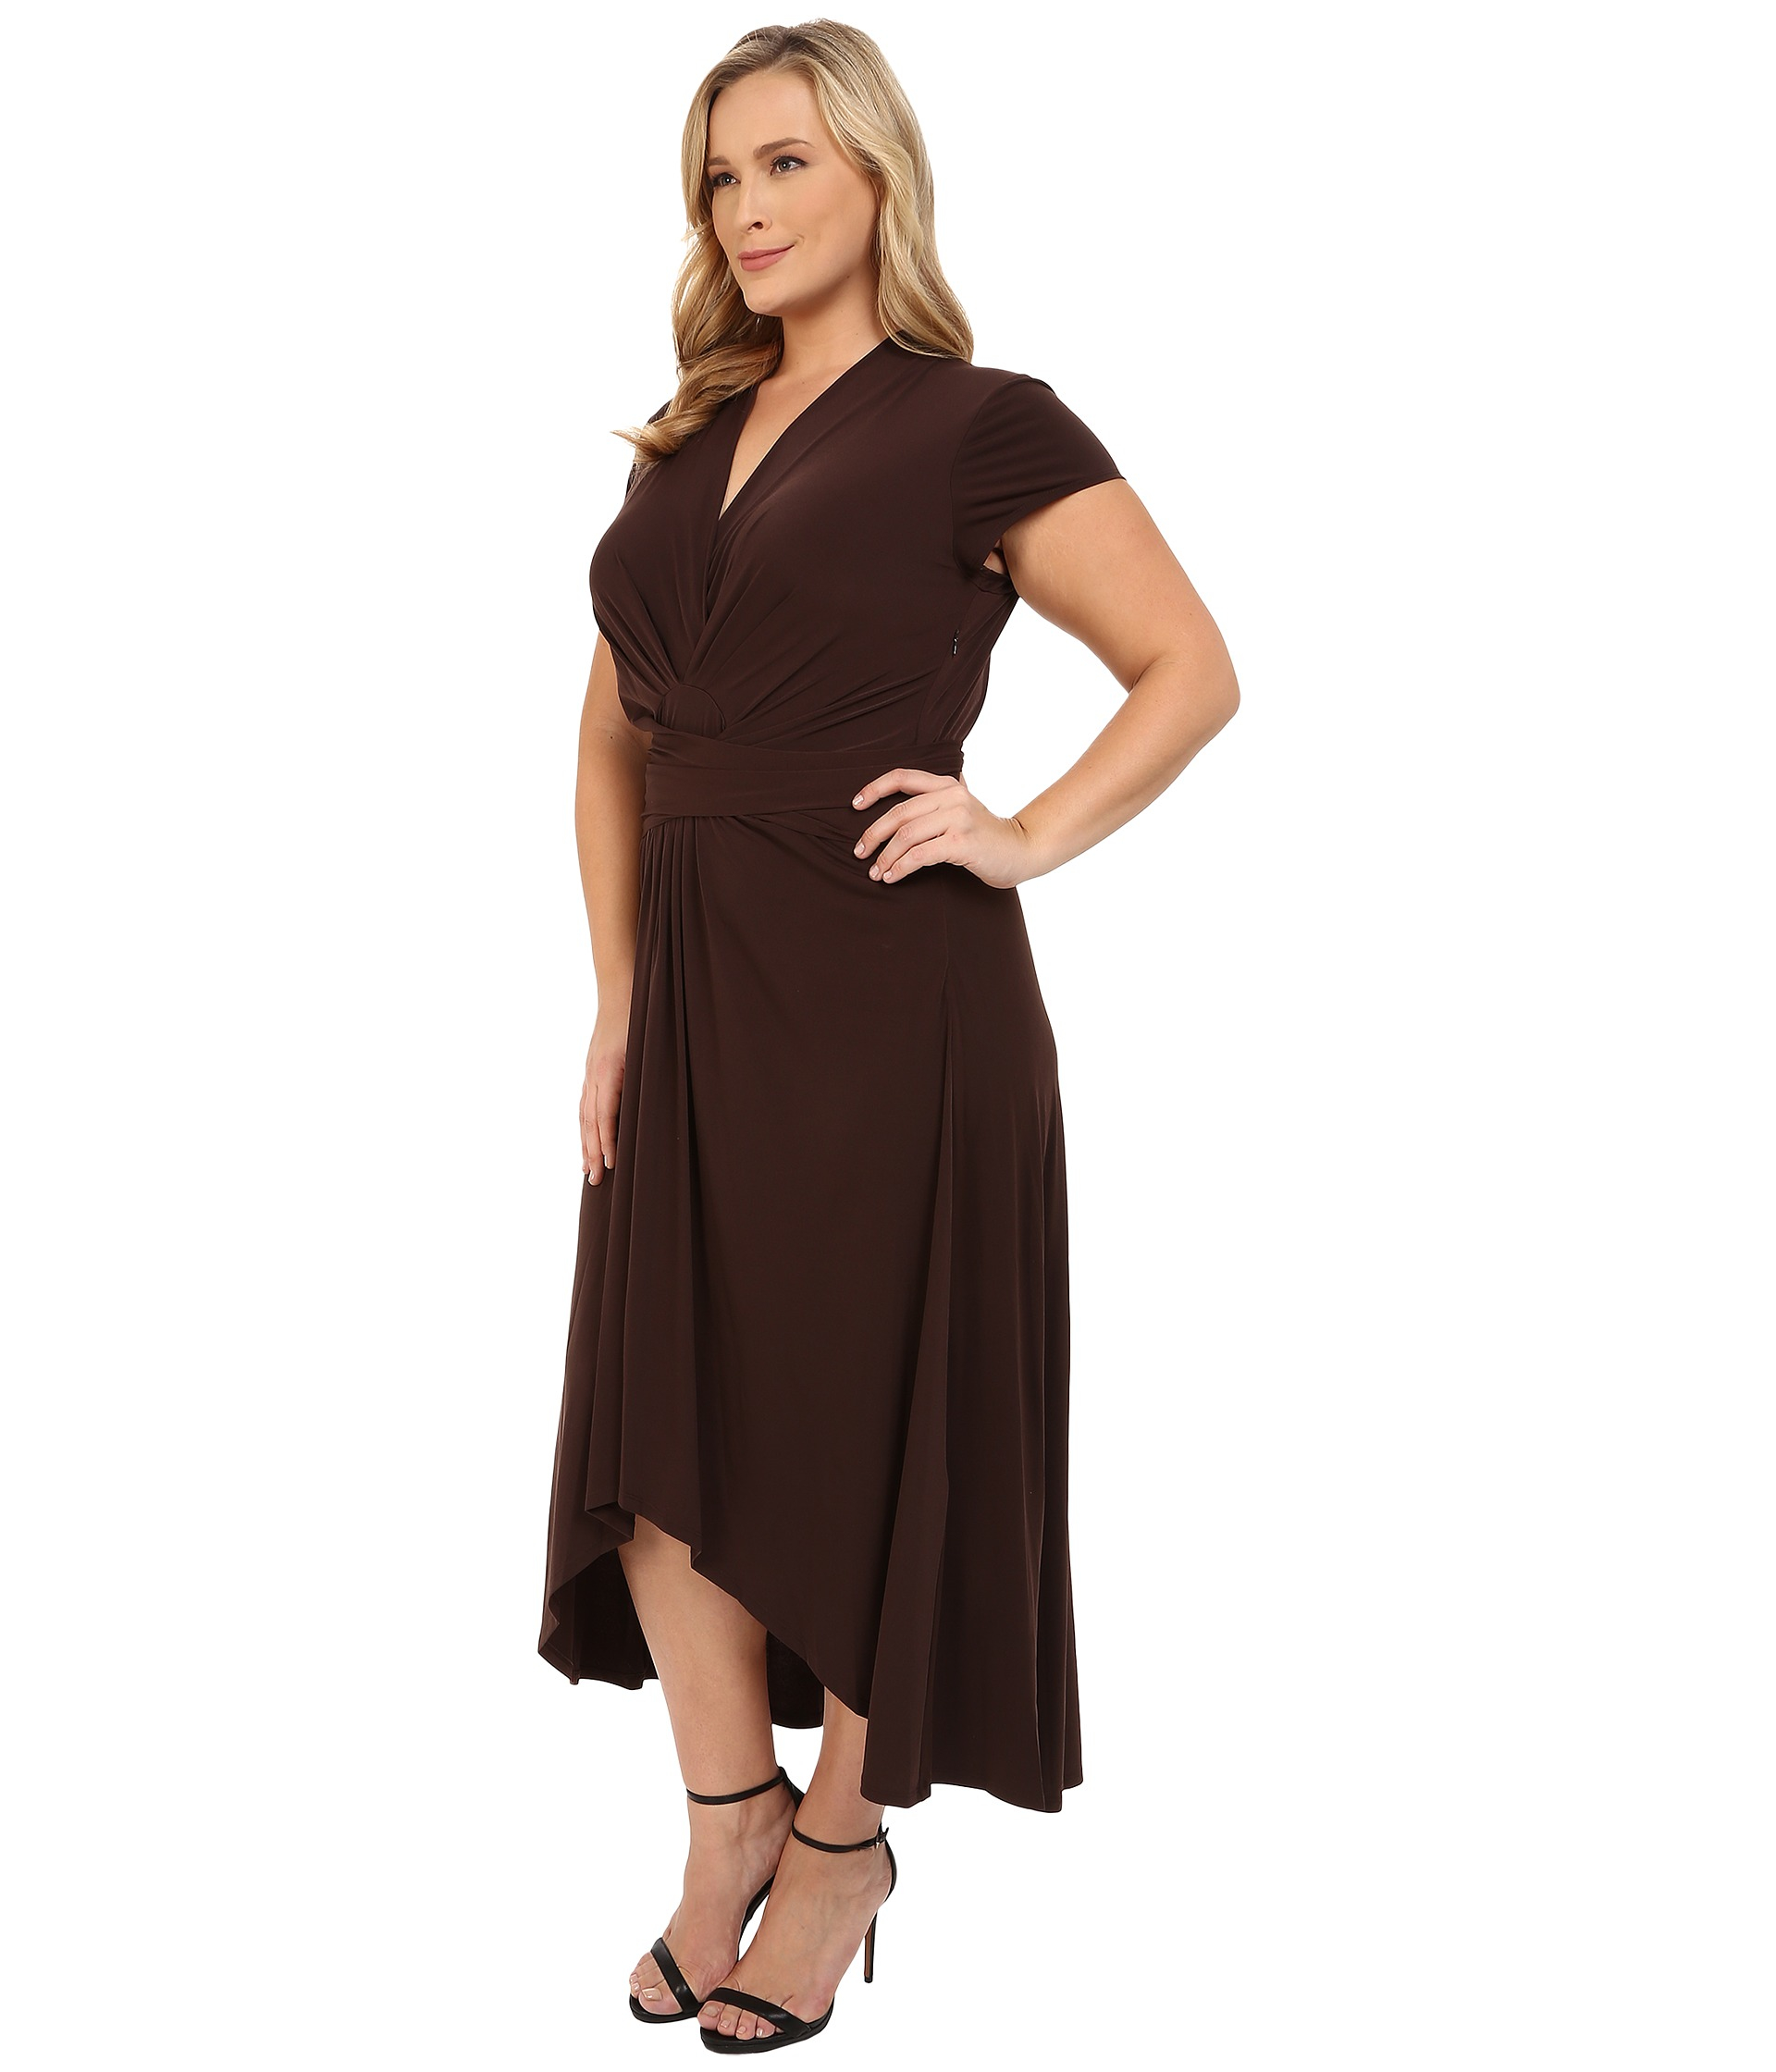 Chocolate Plus Size Dresses – Fashion dresses